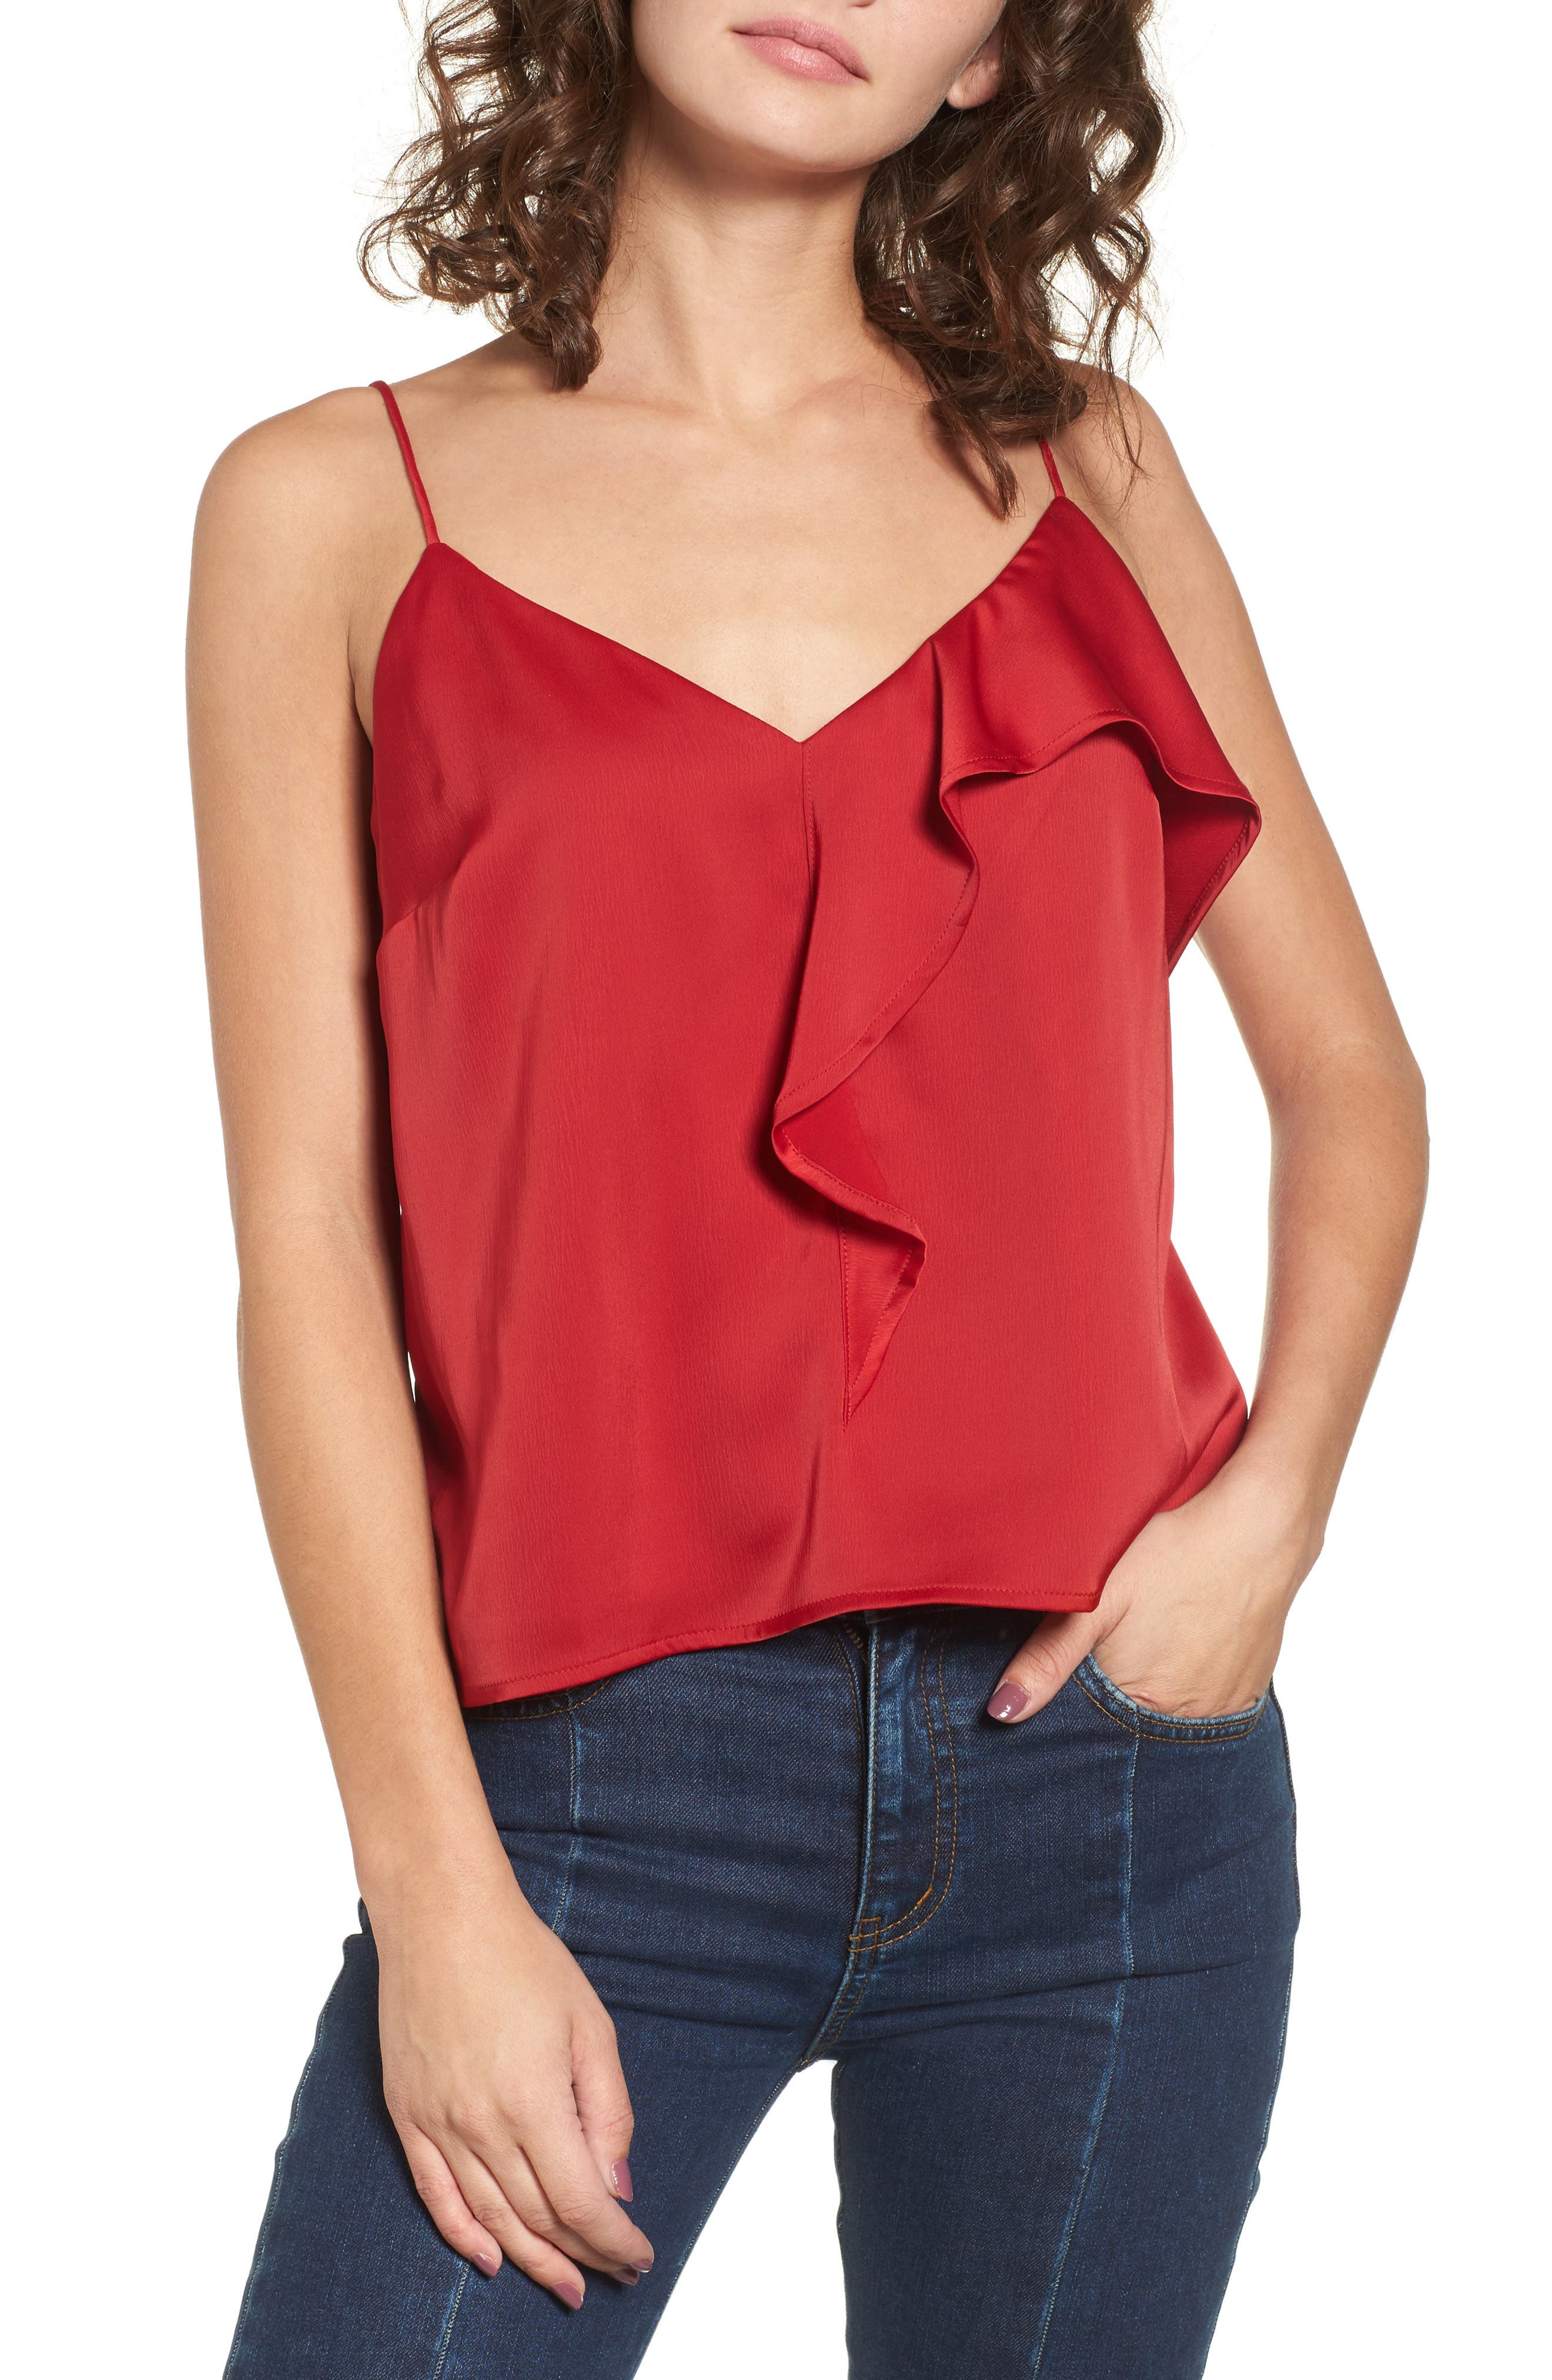 Main Image - Ruffle Front Camisole Top